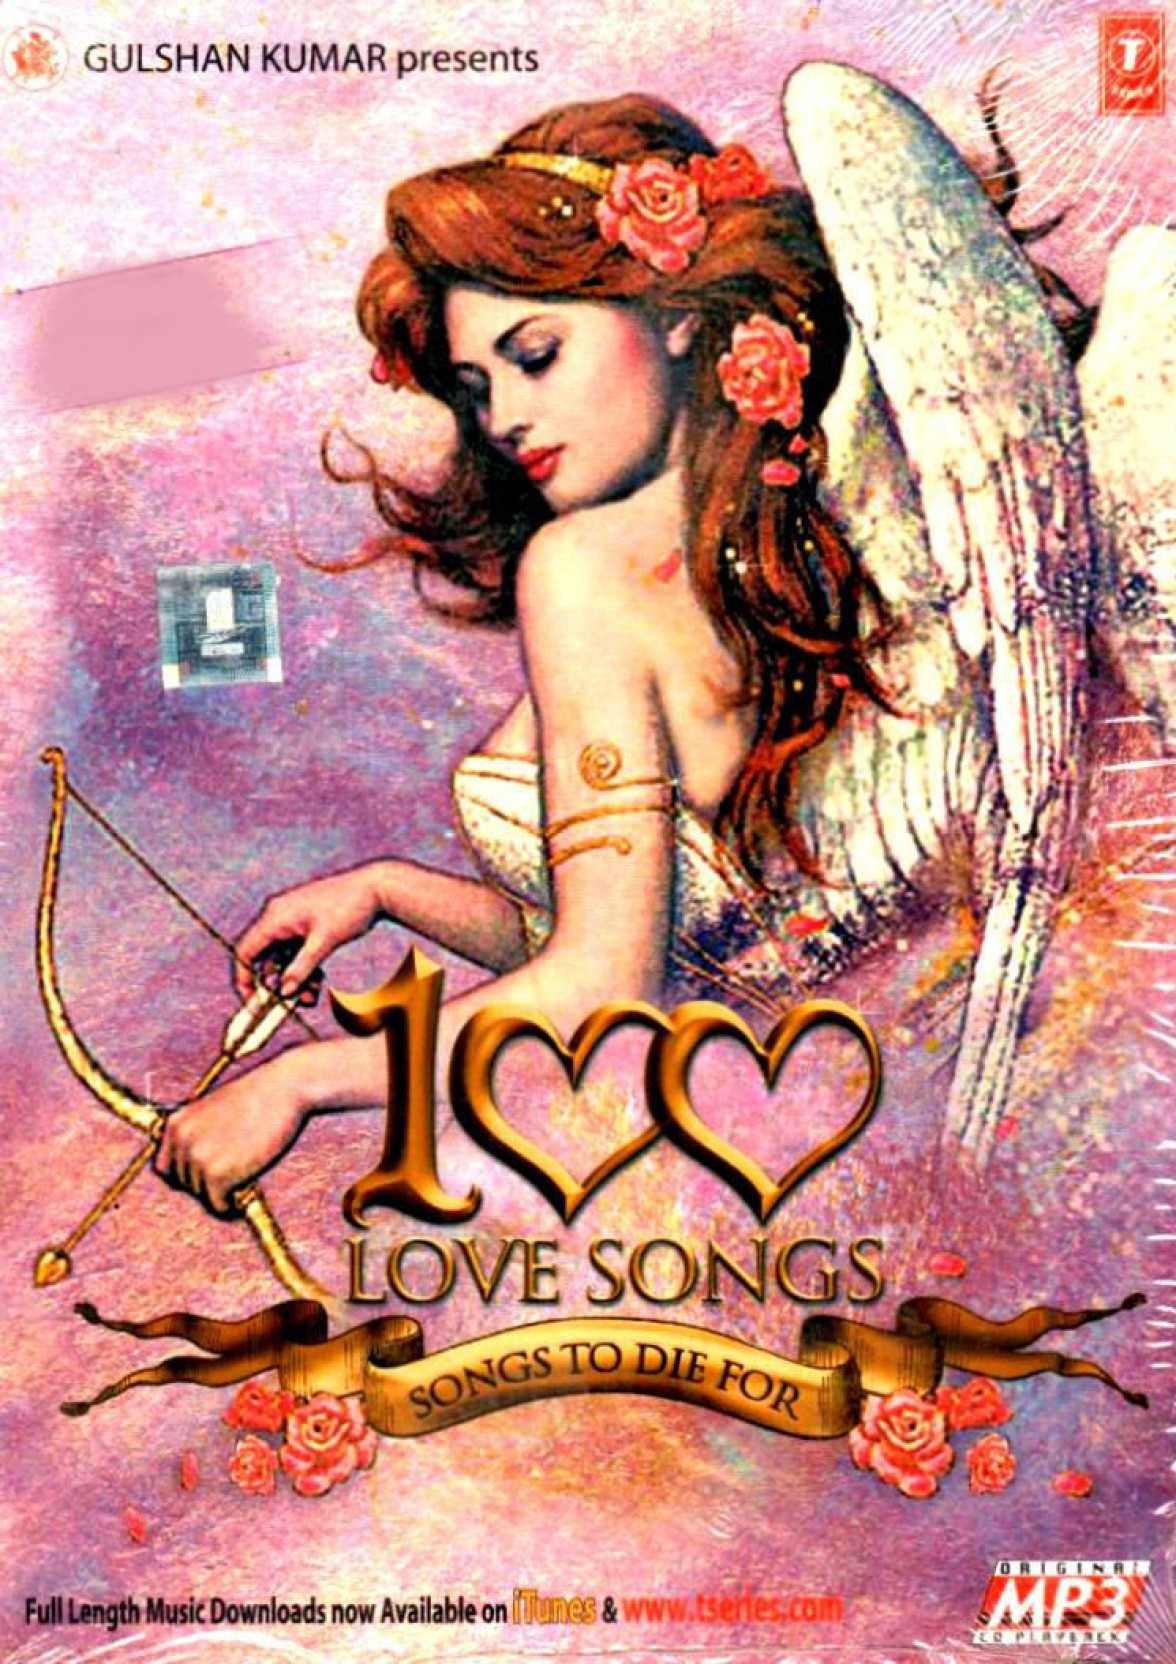 100 Love Songs (Songs to Die For) Music Audio CD - Price In India